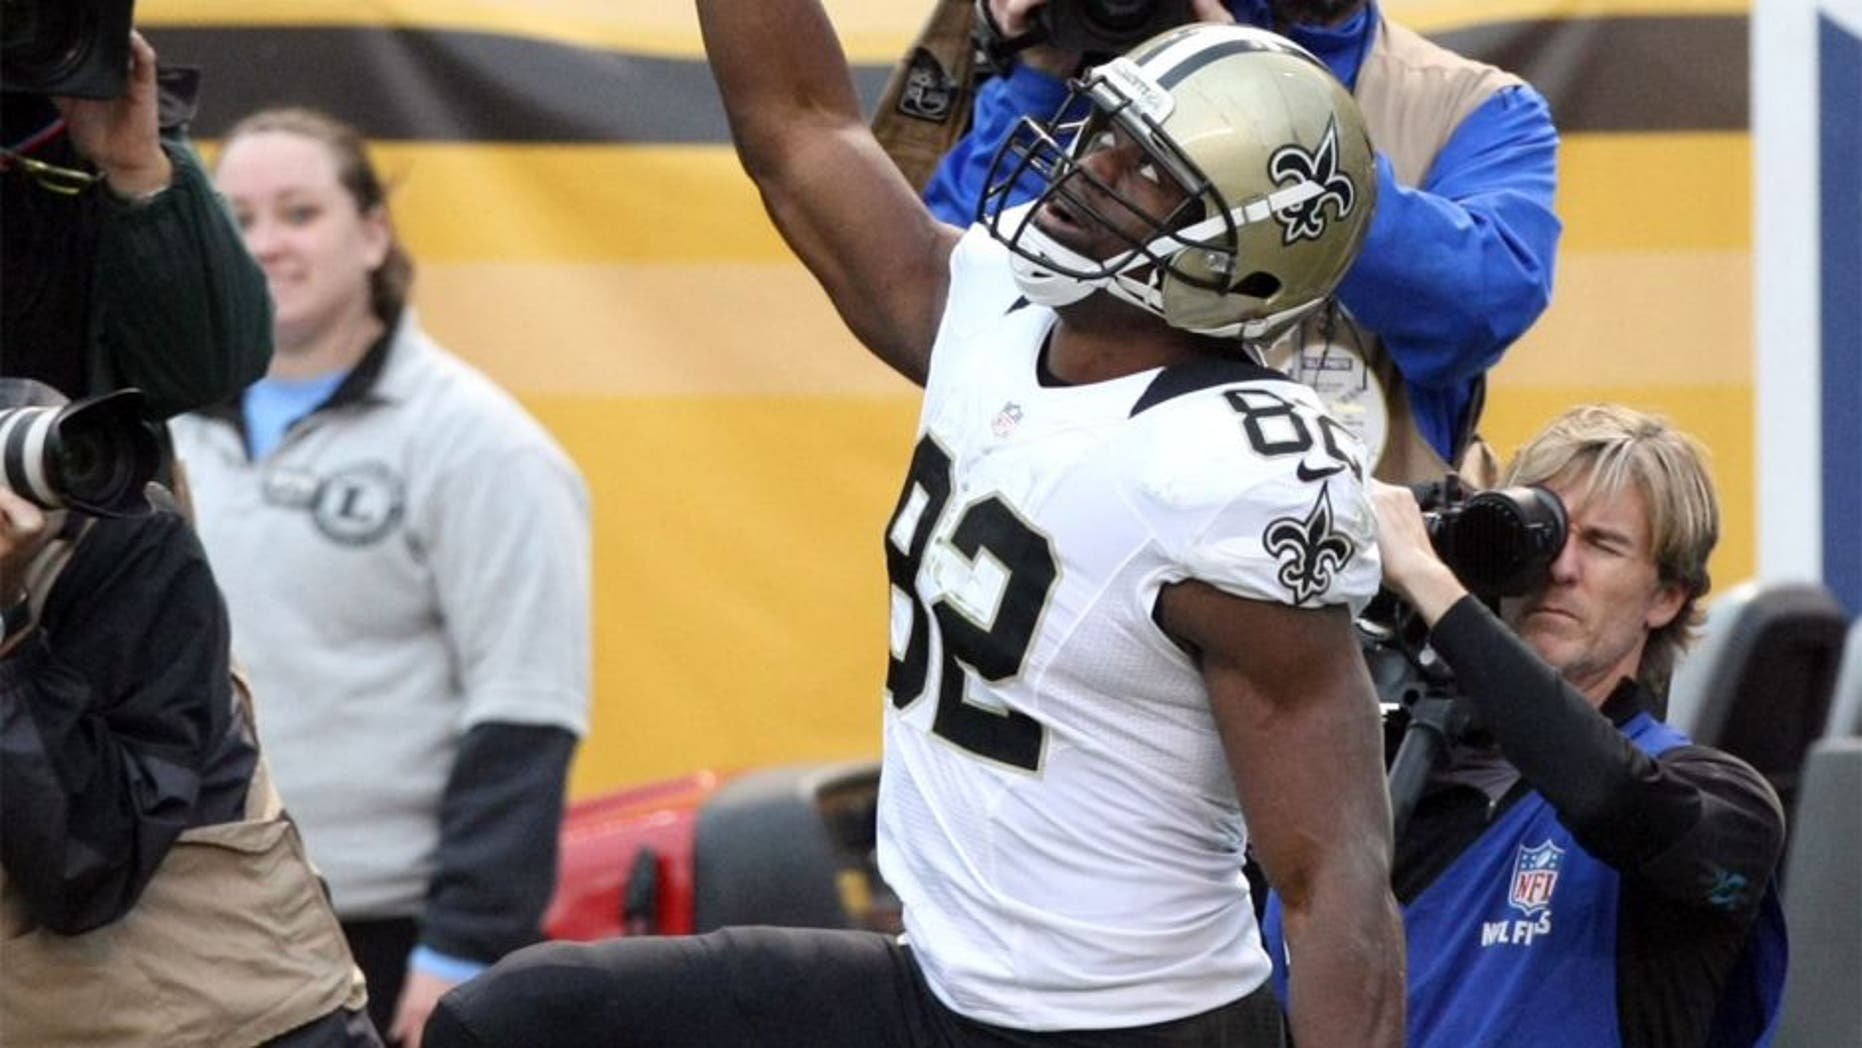 Nov 30, 2014; Pittsburgh, PA, USA; New Orleans Saints tight end Benjamin Watson (82) celebrates a touchdown against the Pittsburgh Steelers during the first half at Heinz Field. Mandatory Credit: Jason Bridge-USA TODAY Sports